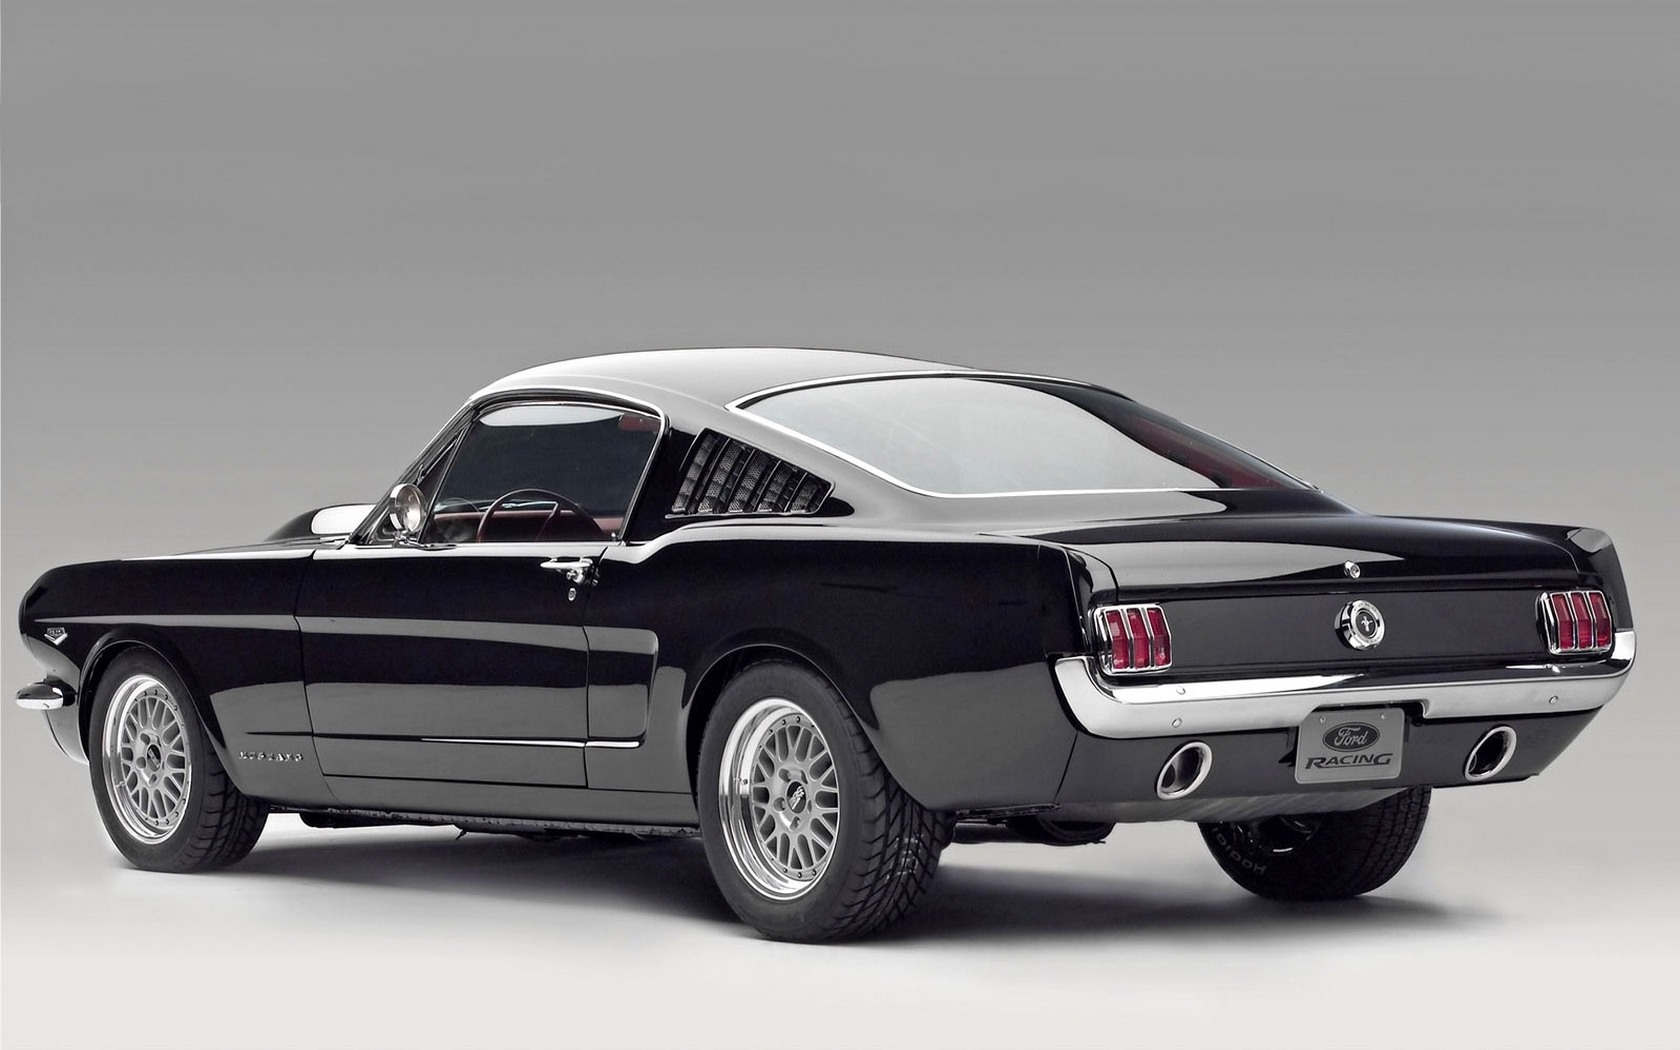 Ford Mustang desktop wallpaper 1680x1050